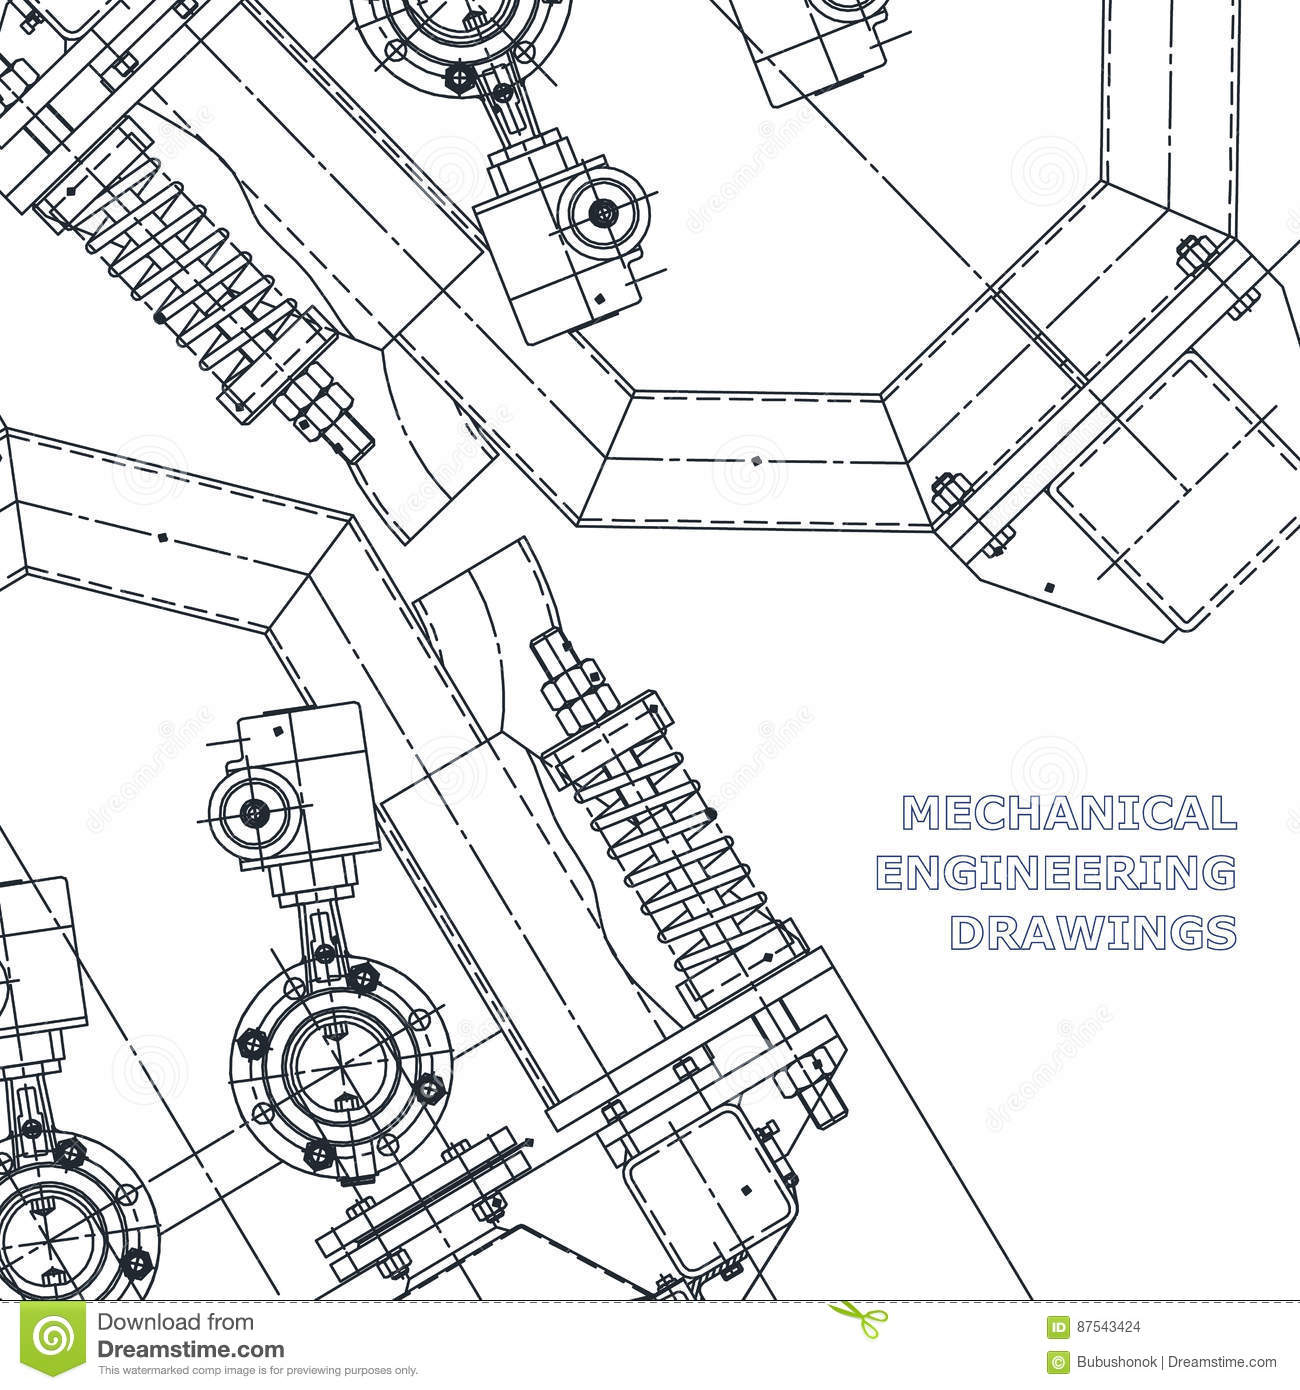 Mechanical Engineering The Drawing. Technical Illustration Stock ...